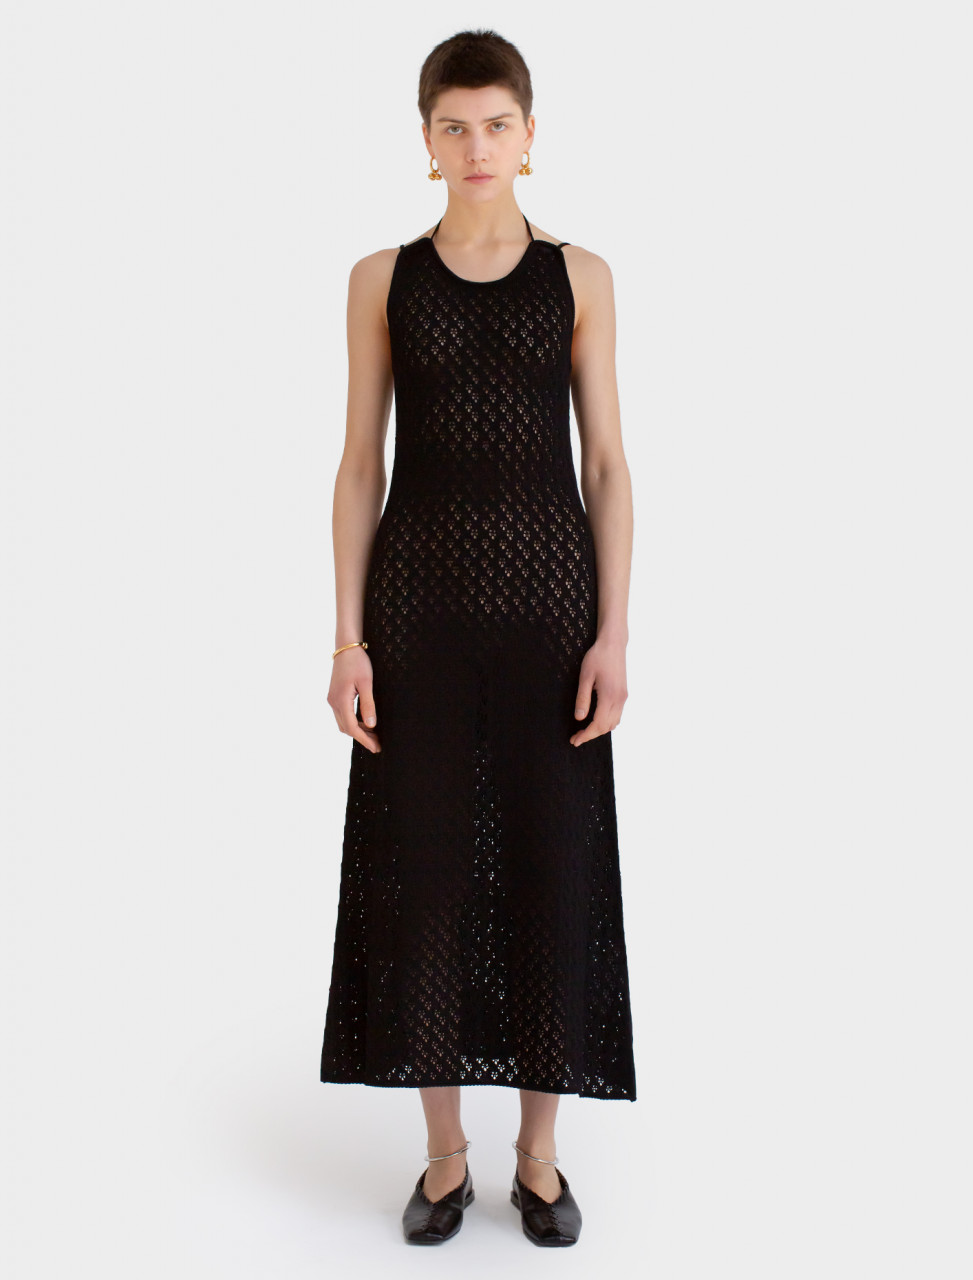 Knitted Dress in Black